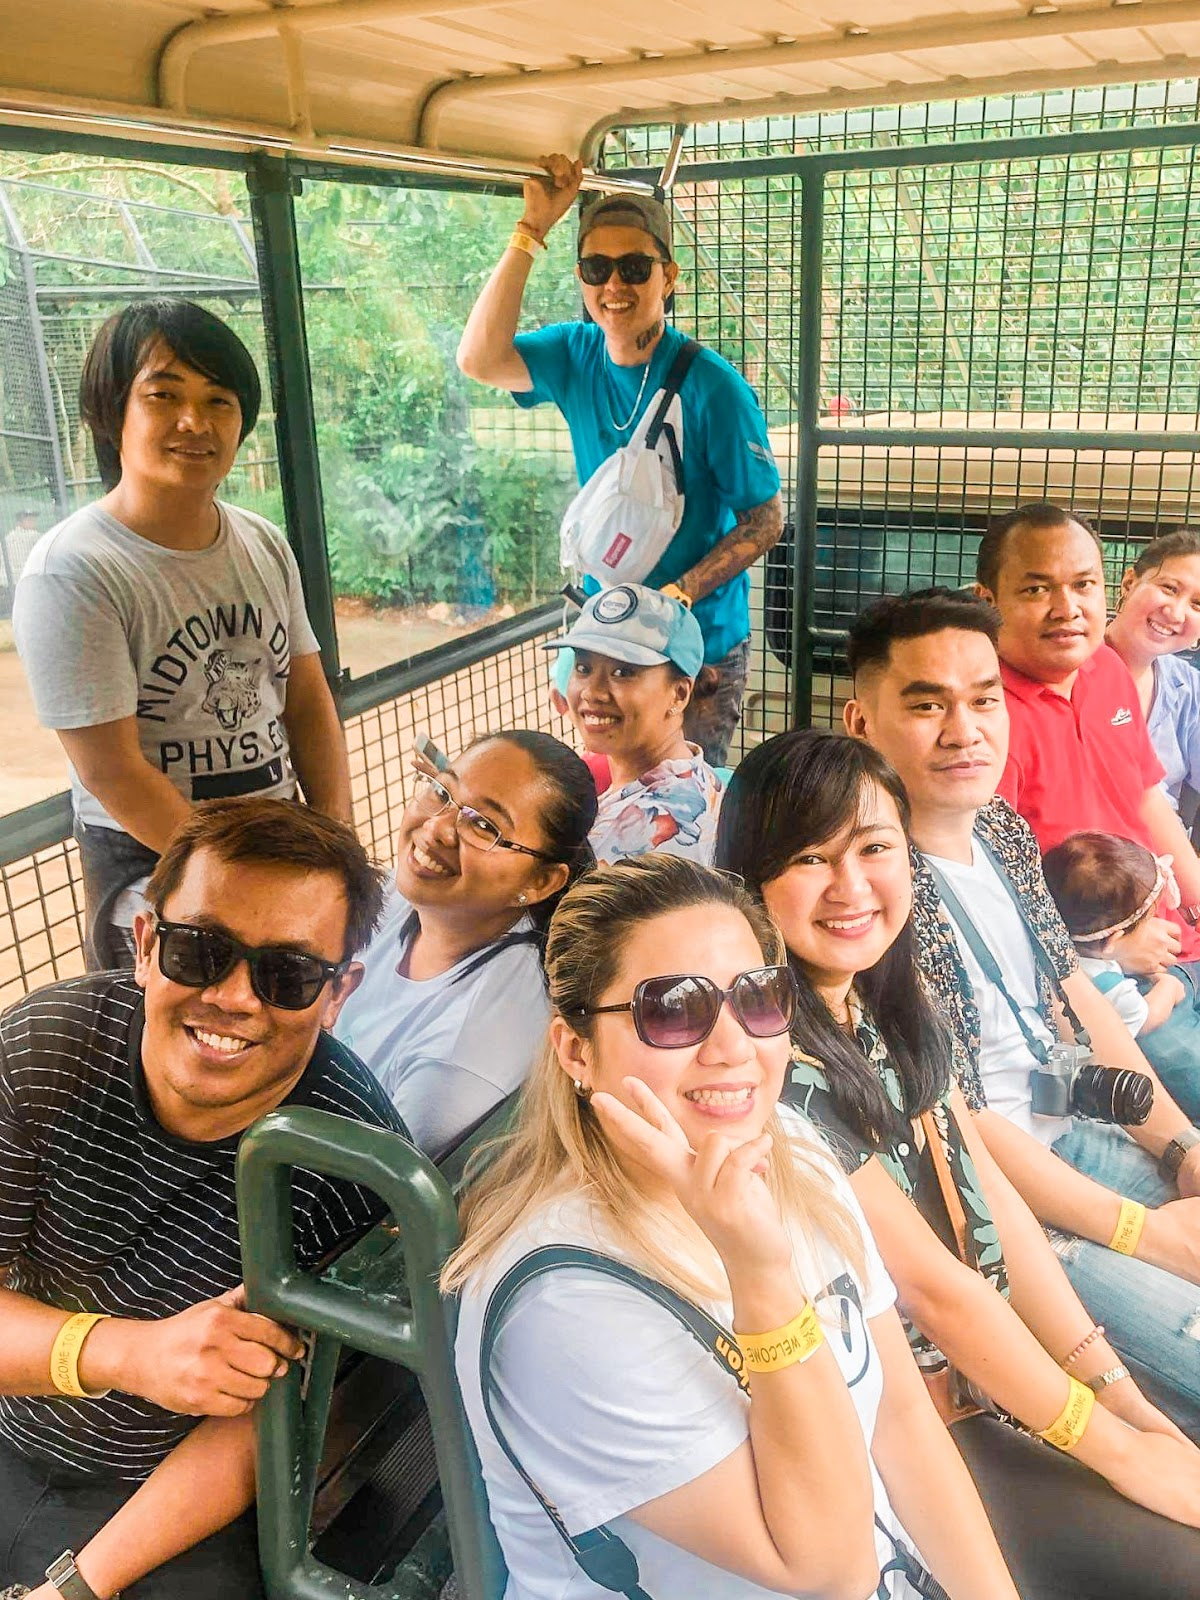 Cebu Safari and Adventure Park: Adventure Rides + Safari Camp